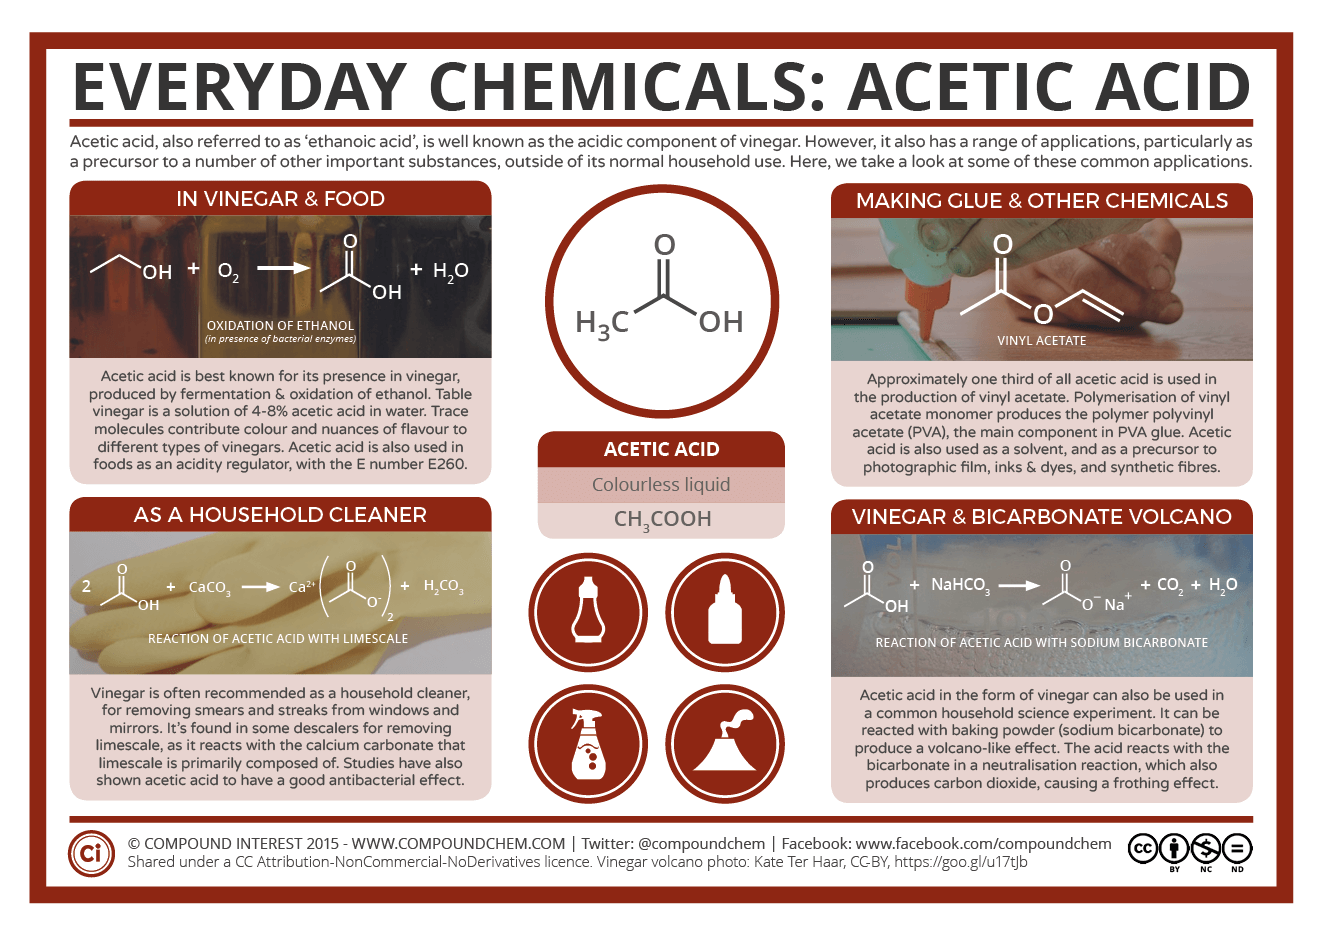 Everyday Chemicals: Acetic Acid – Vinegar & Volcanoes | Compound